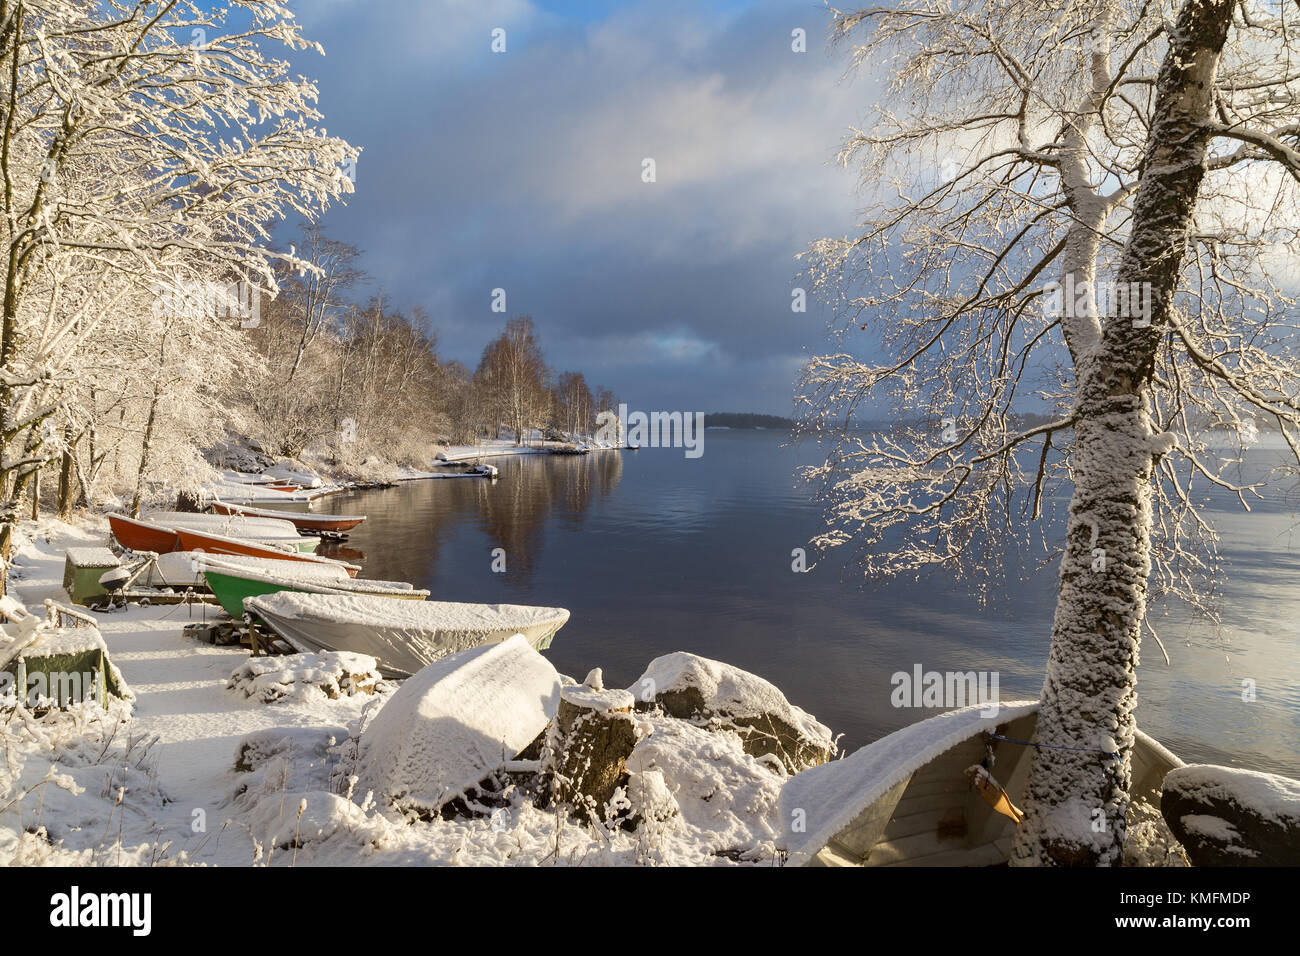 Beautiful view of Lake Pyhäjärvi, snowy ground, many rowboats and trees on a sunny day in the winter in - Stock Image